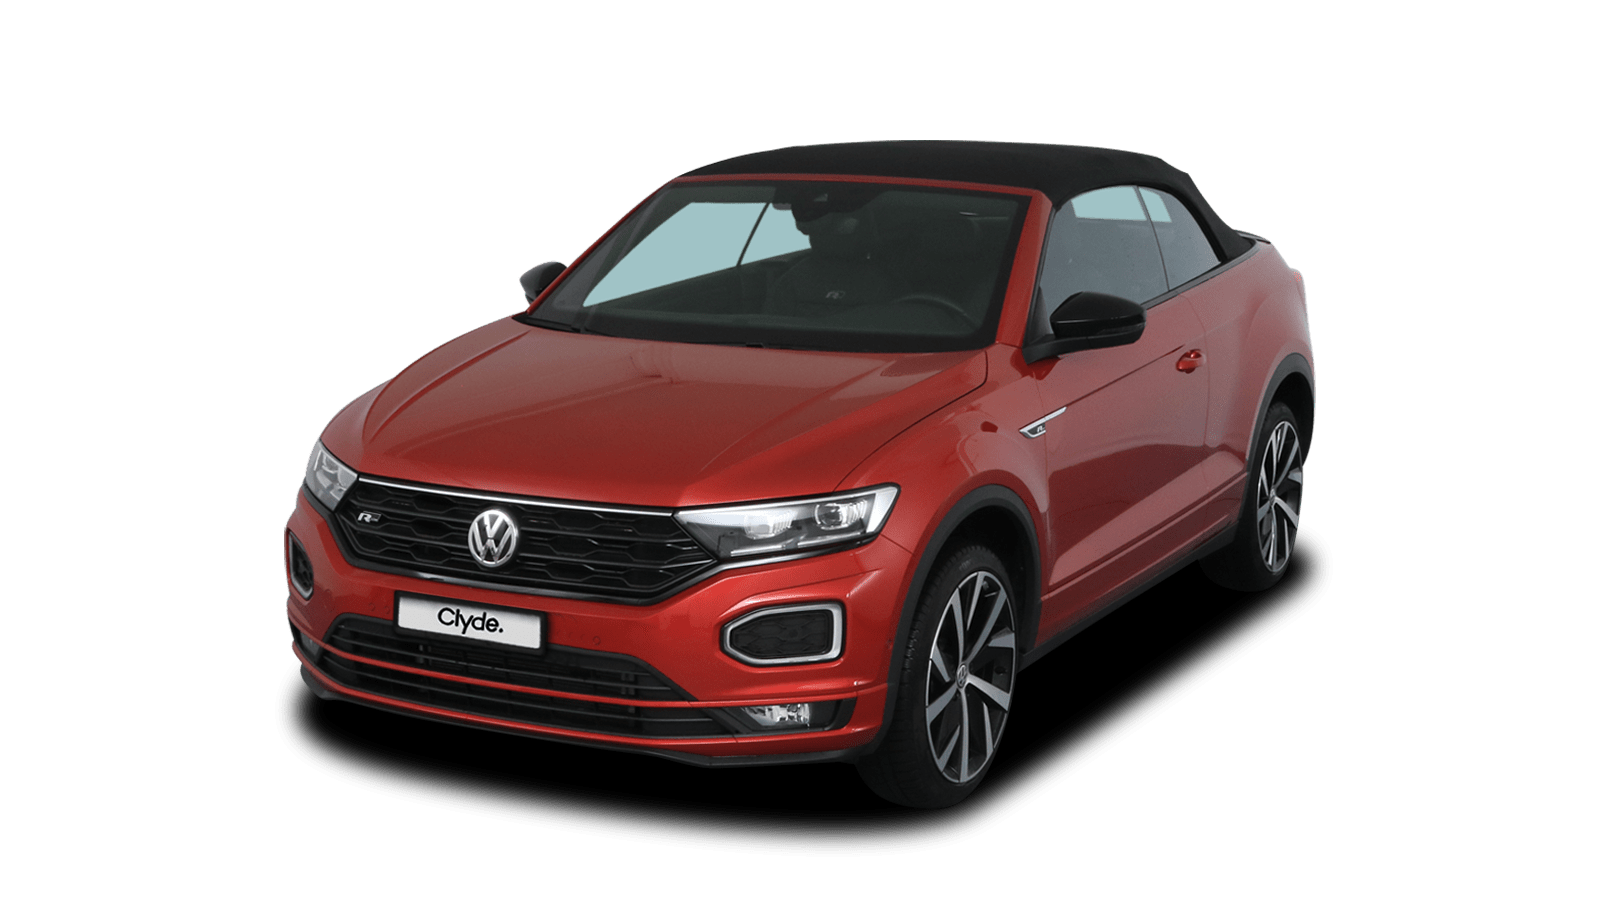 VW T-Roc Cabriolet Rot front - Clyde Auto-Abo